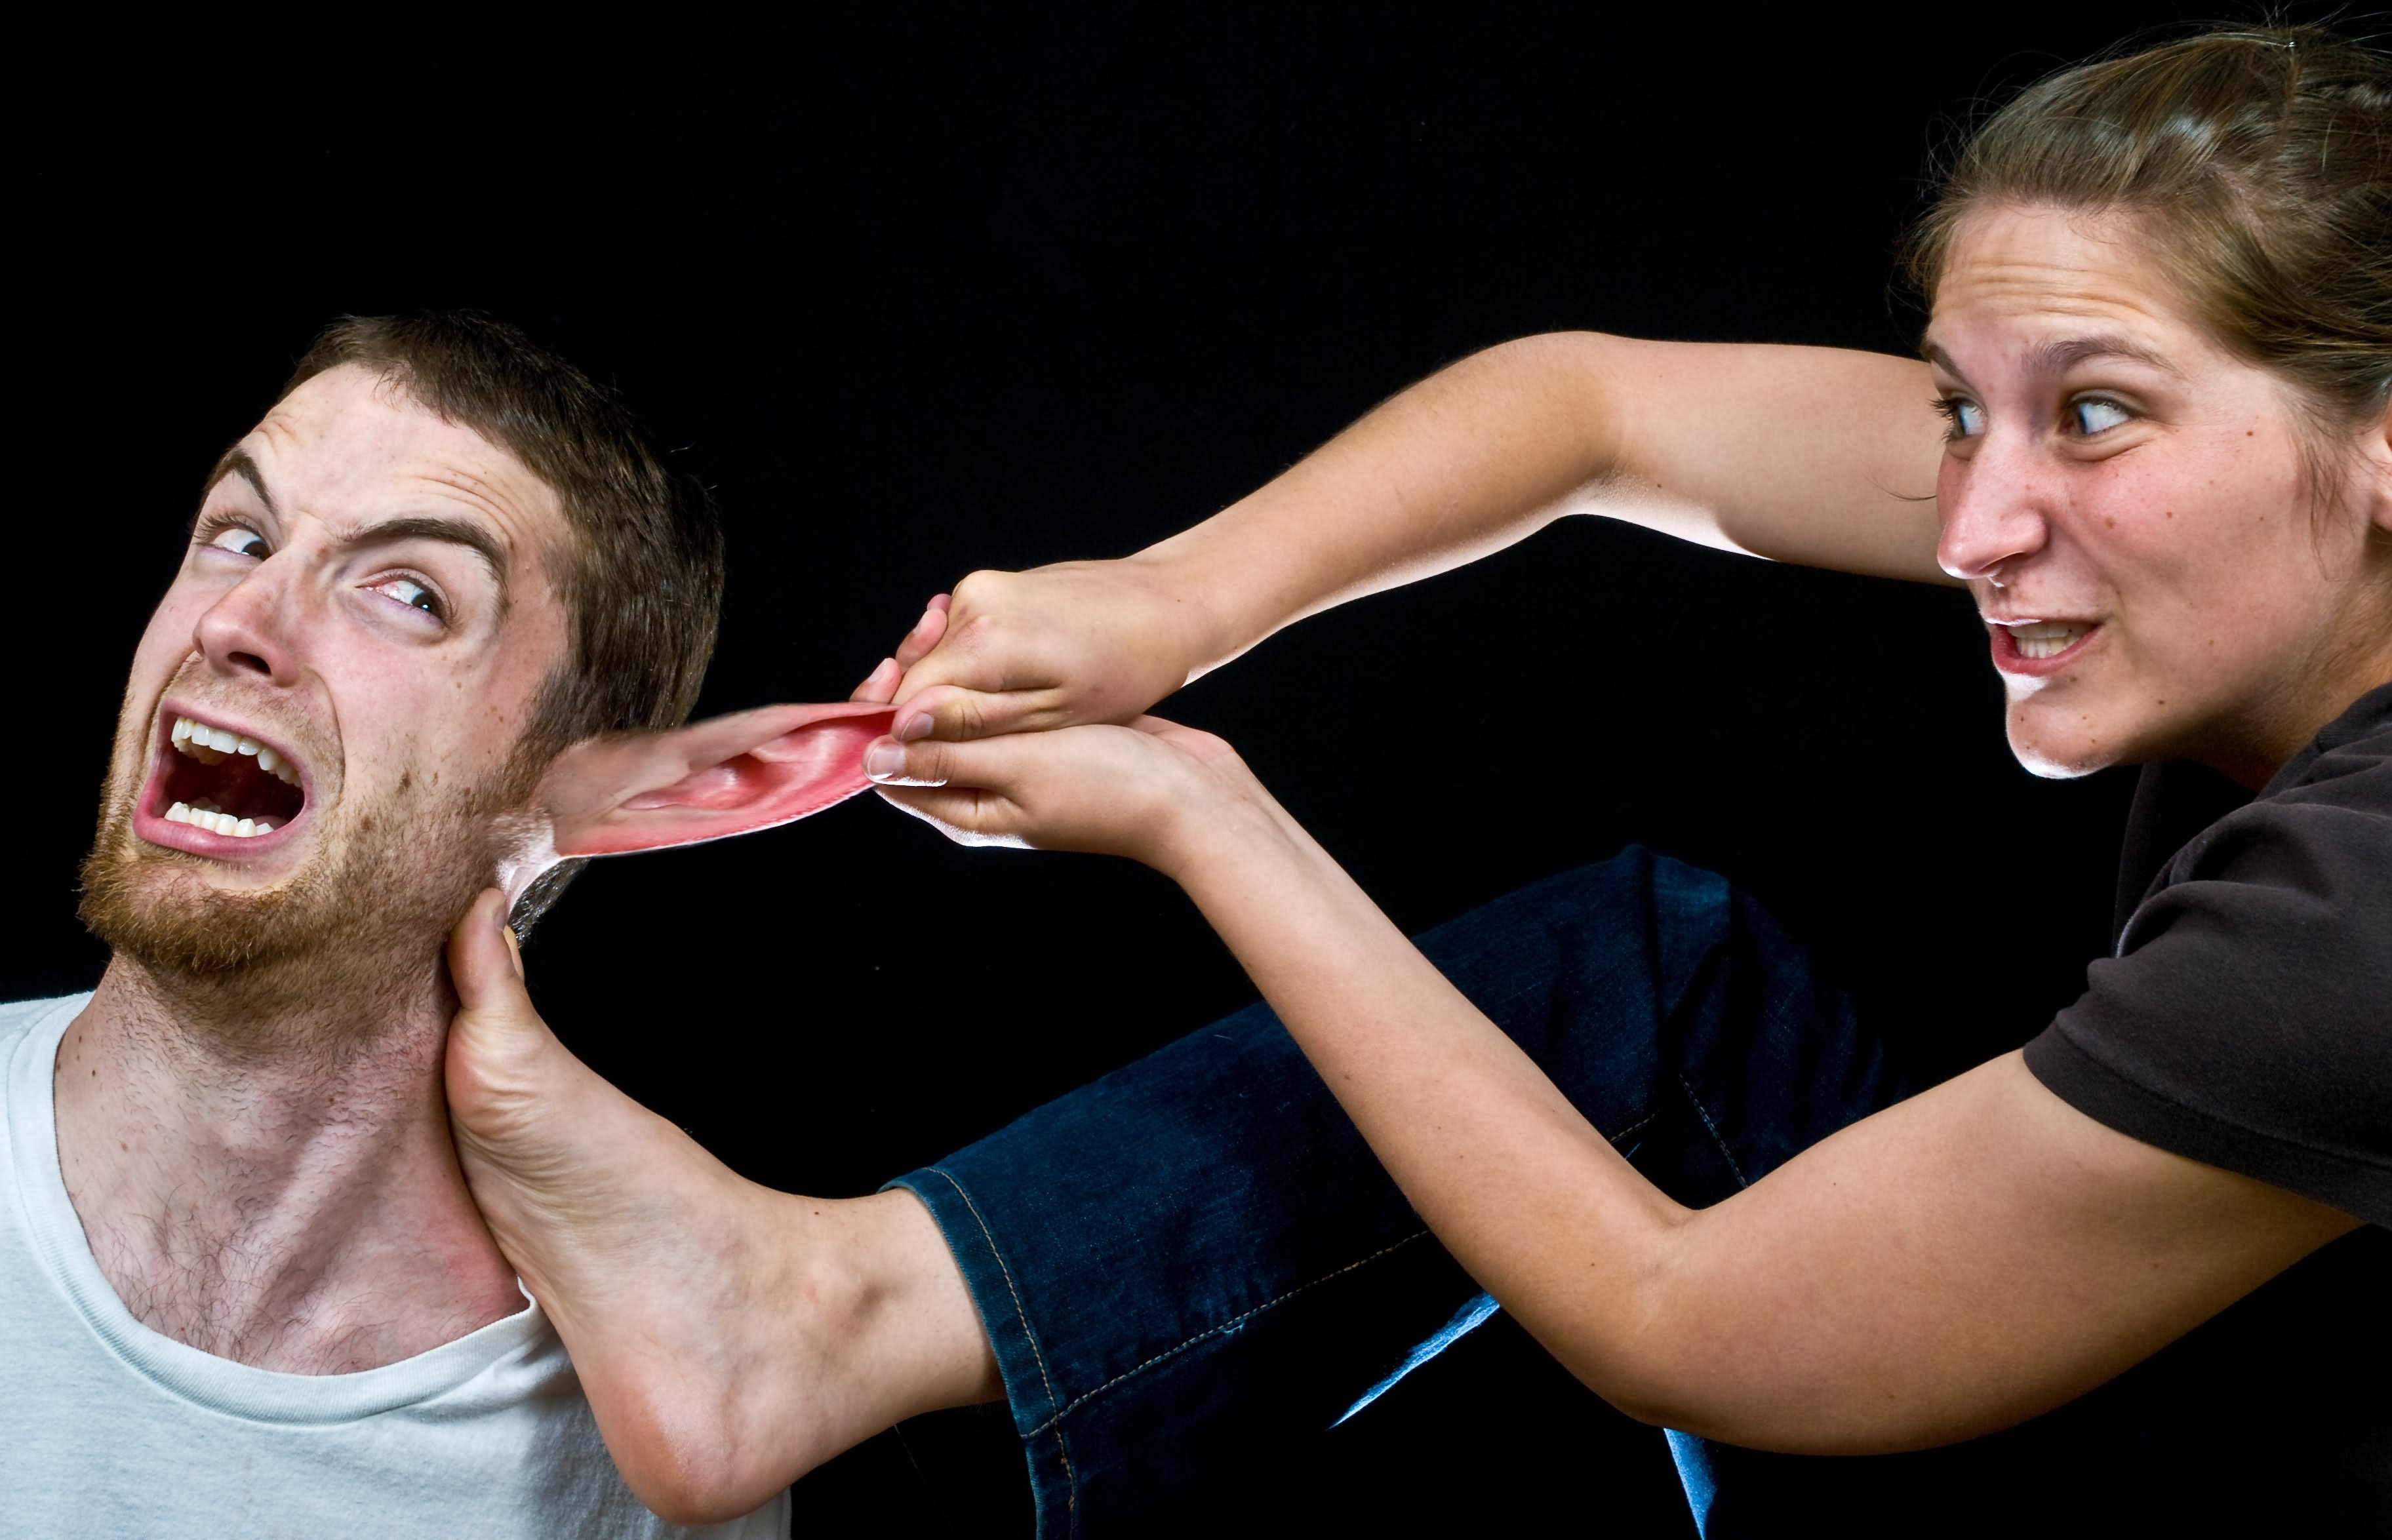 50 Very Funny Couple Photos And Pictures